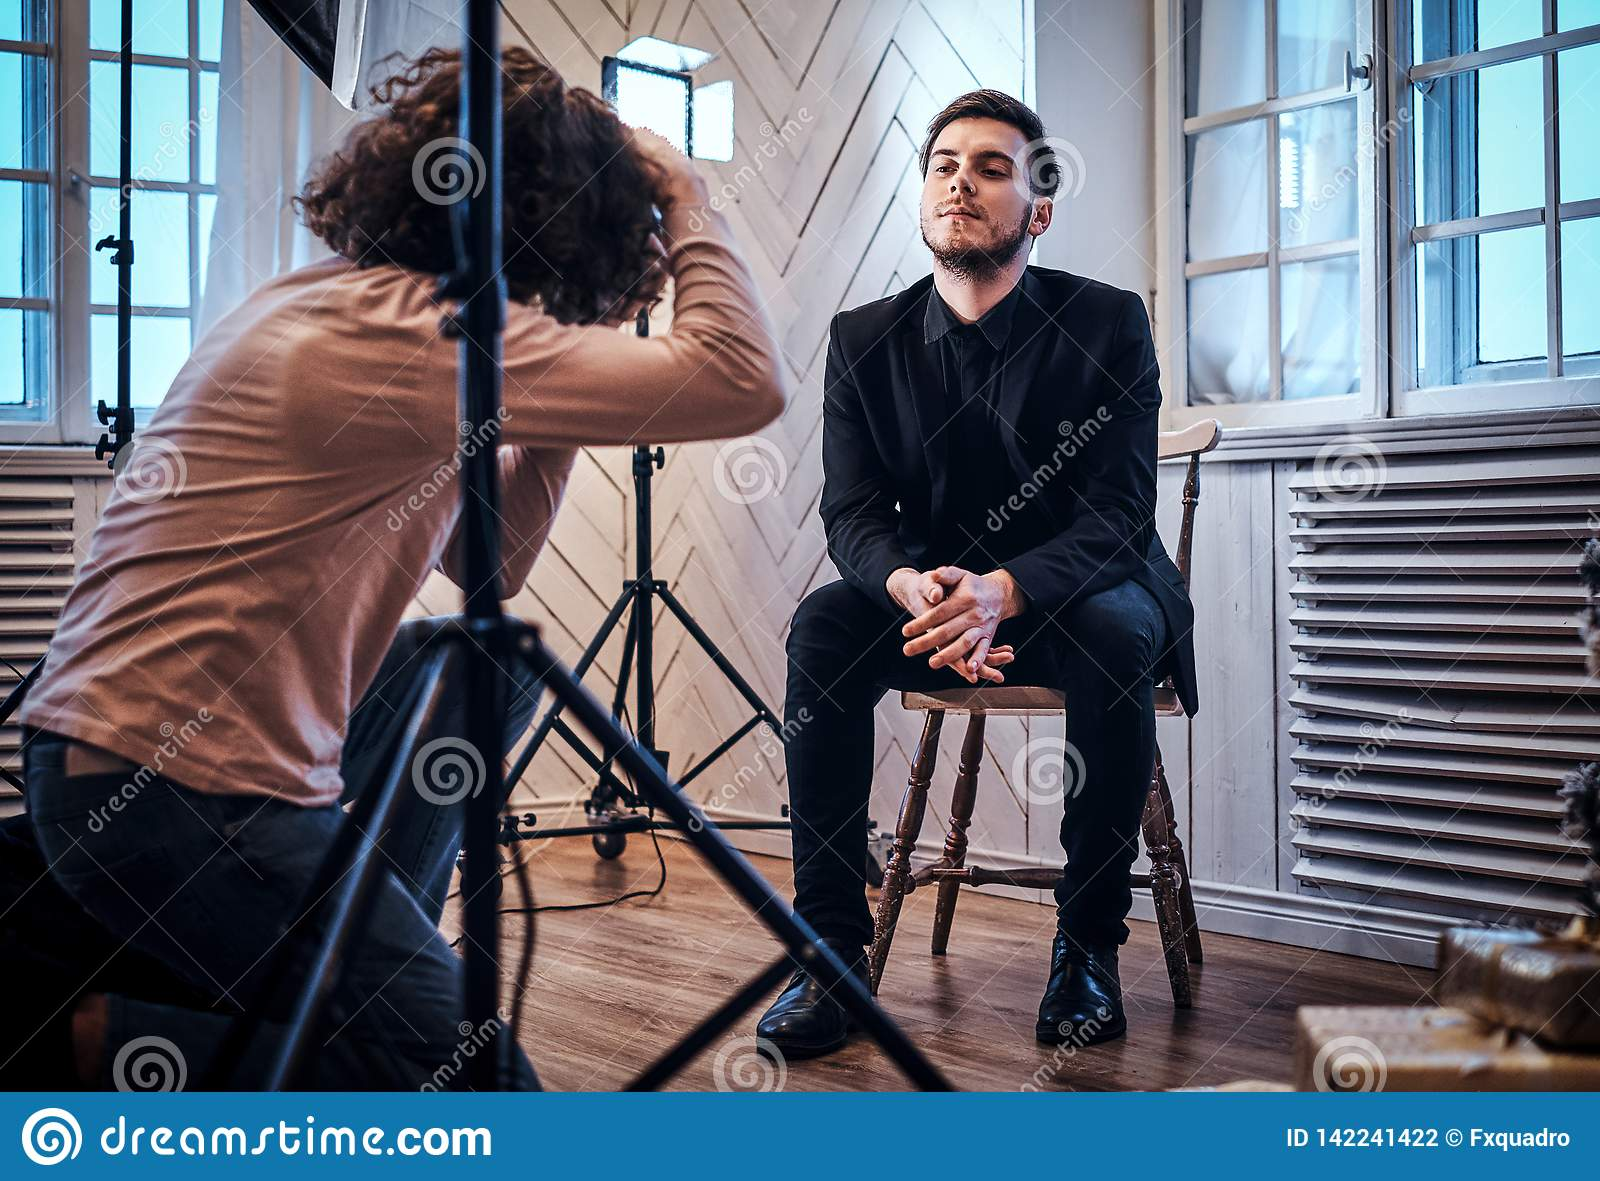 Novice photographer at a photo shoot in a studio with an elegantly dressed guy